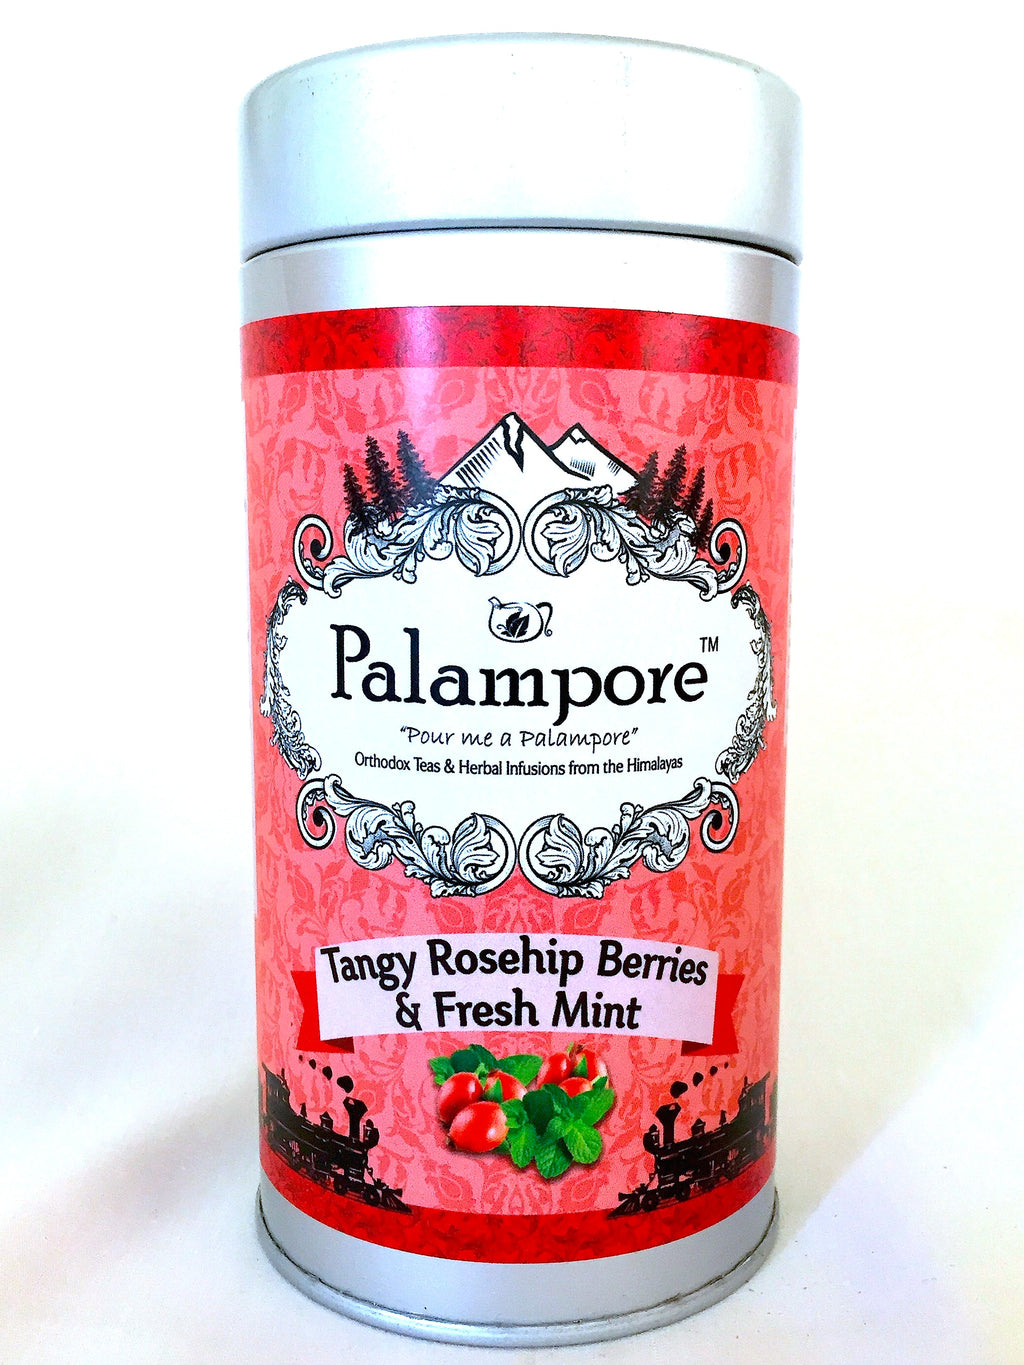 PALAMPORE- Tangy Rosehip Berries & Fresh Mint Infusion